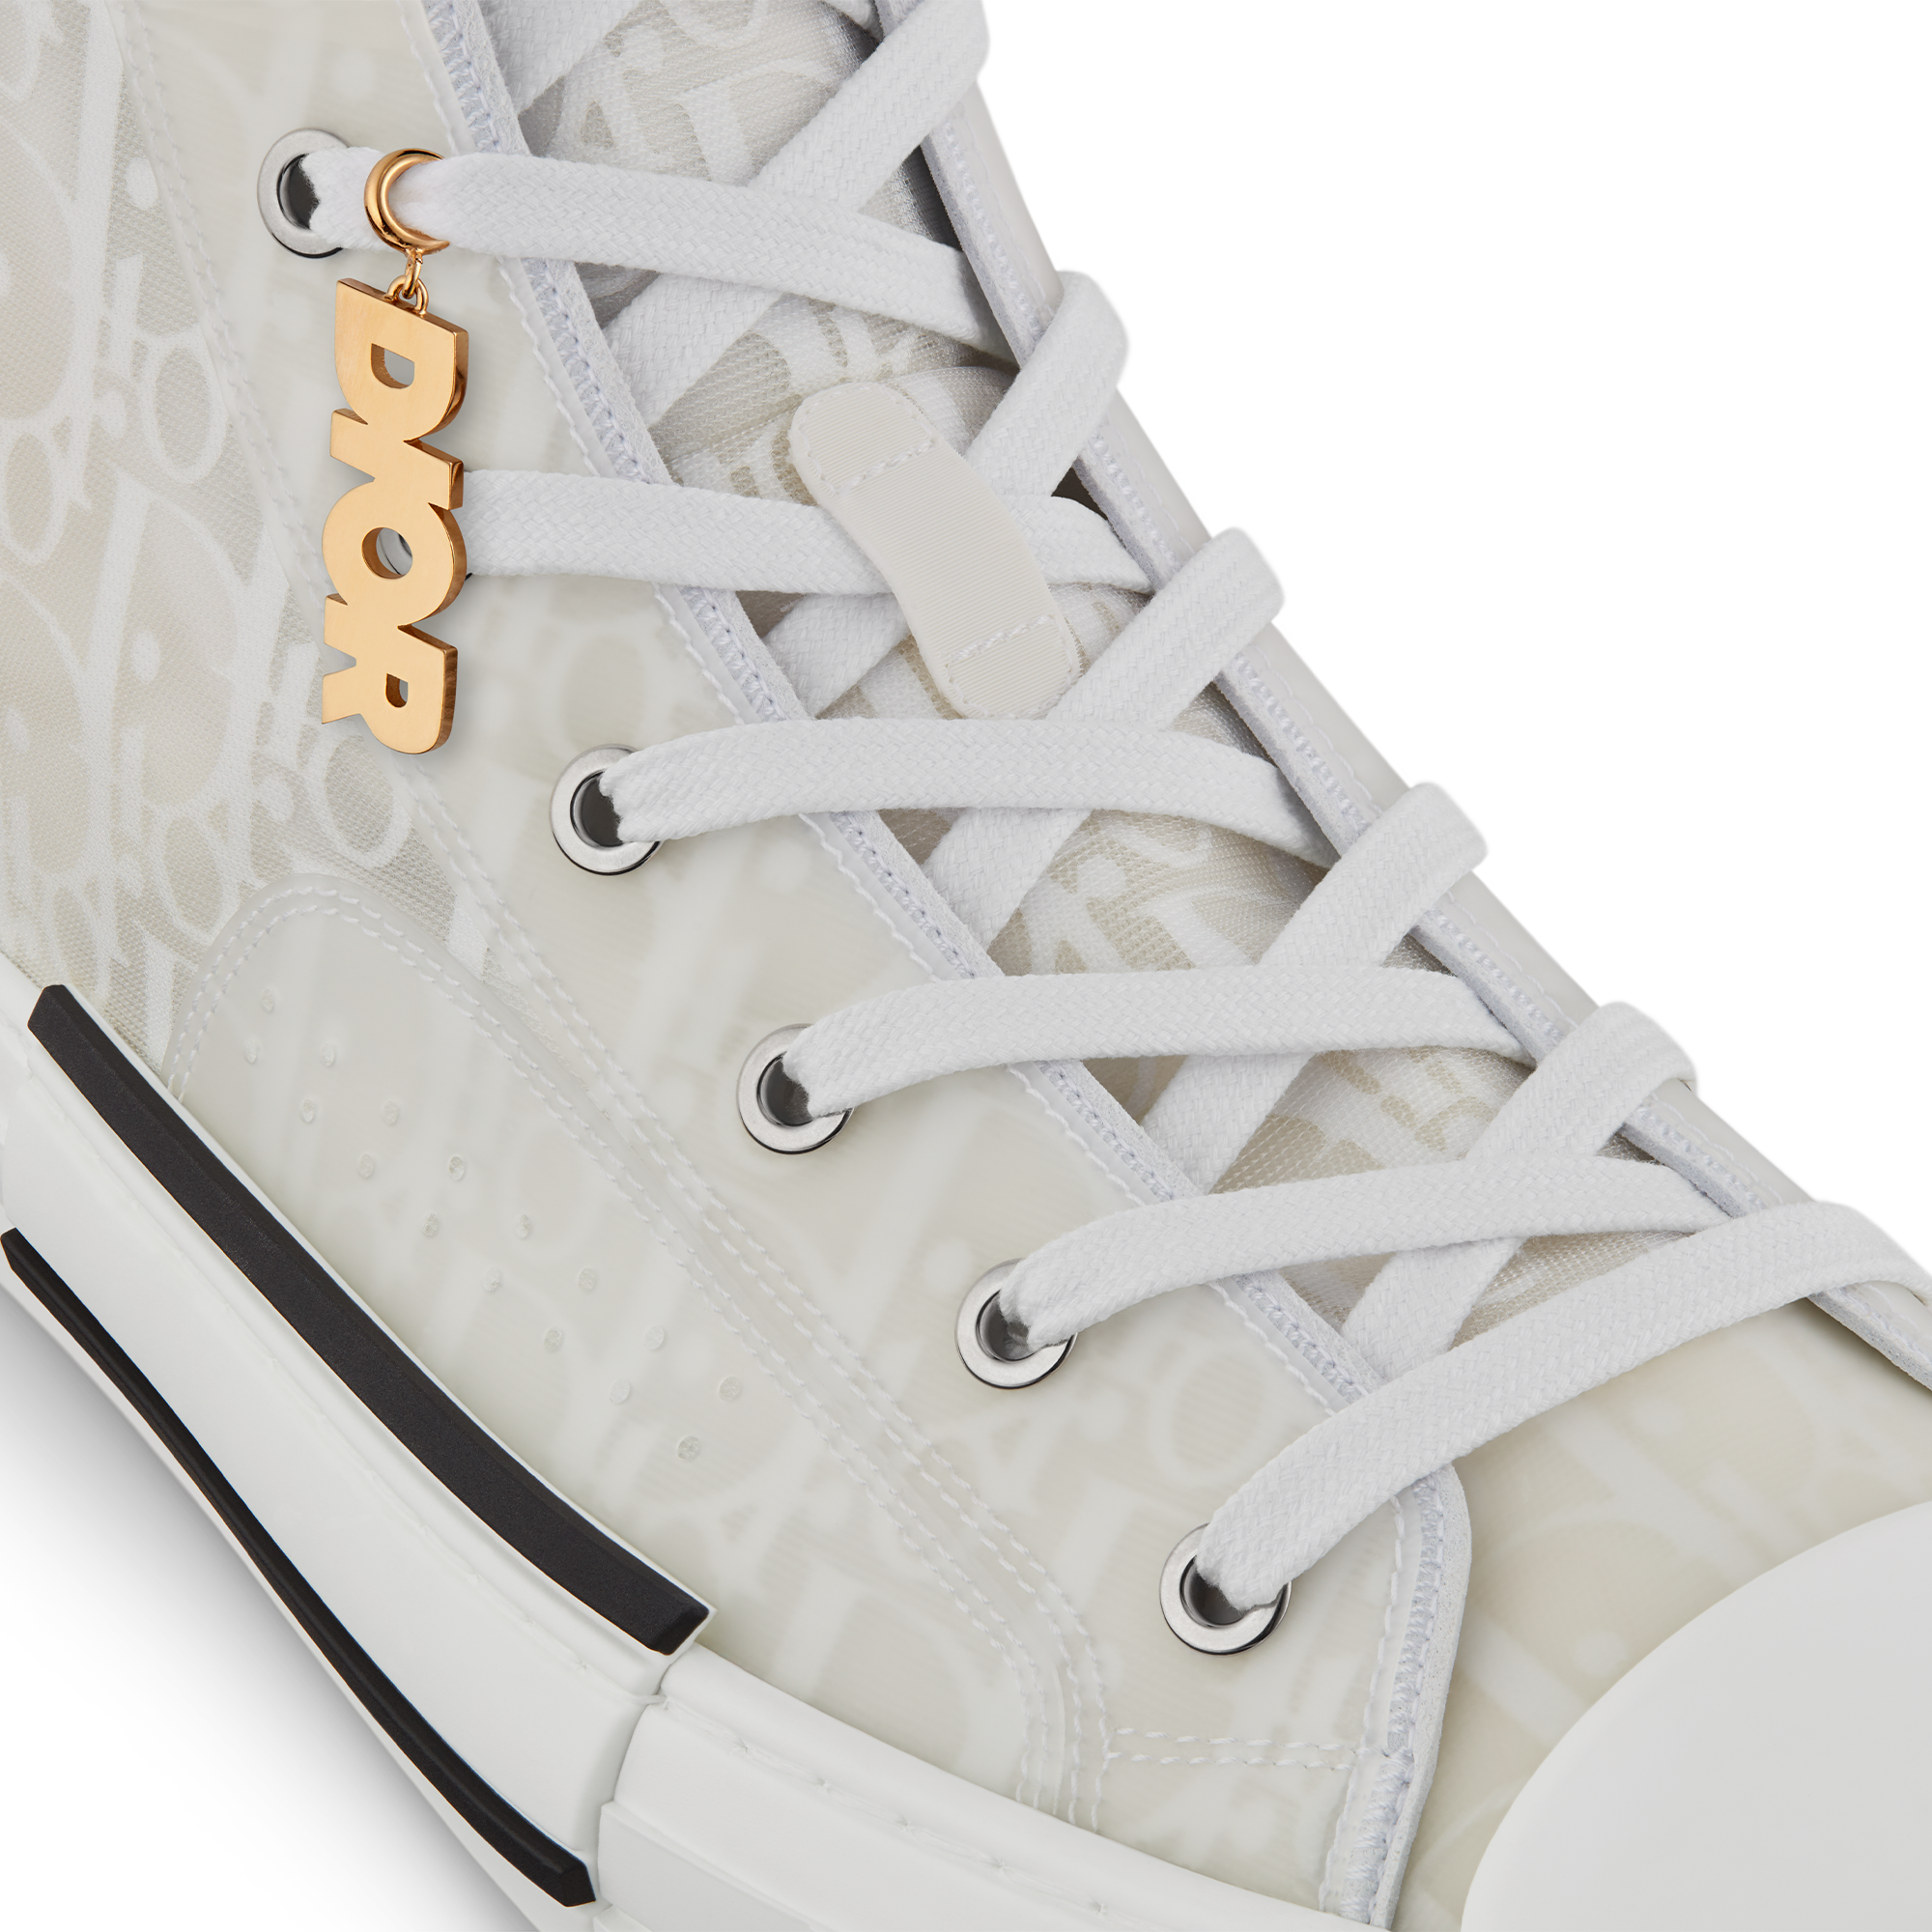 'DIOR' Sneaker Charm Worn view cropped Open gallery